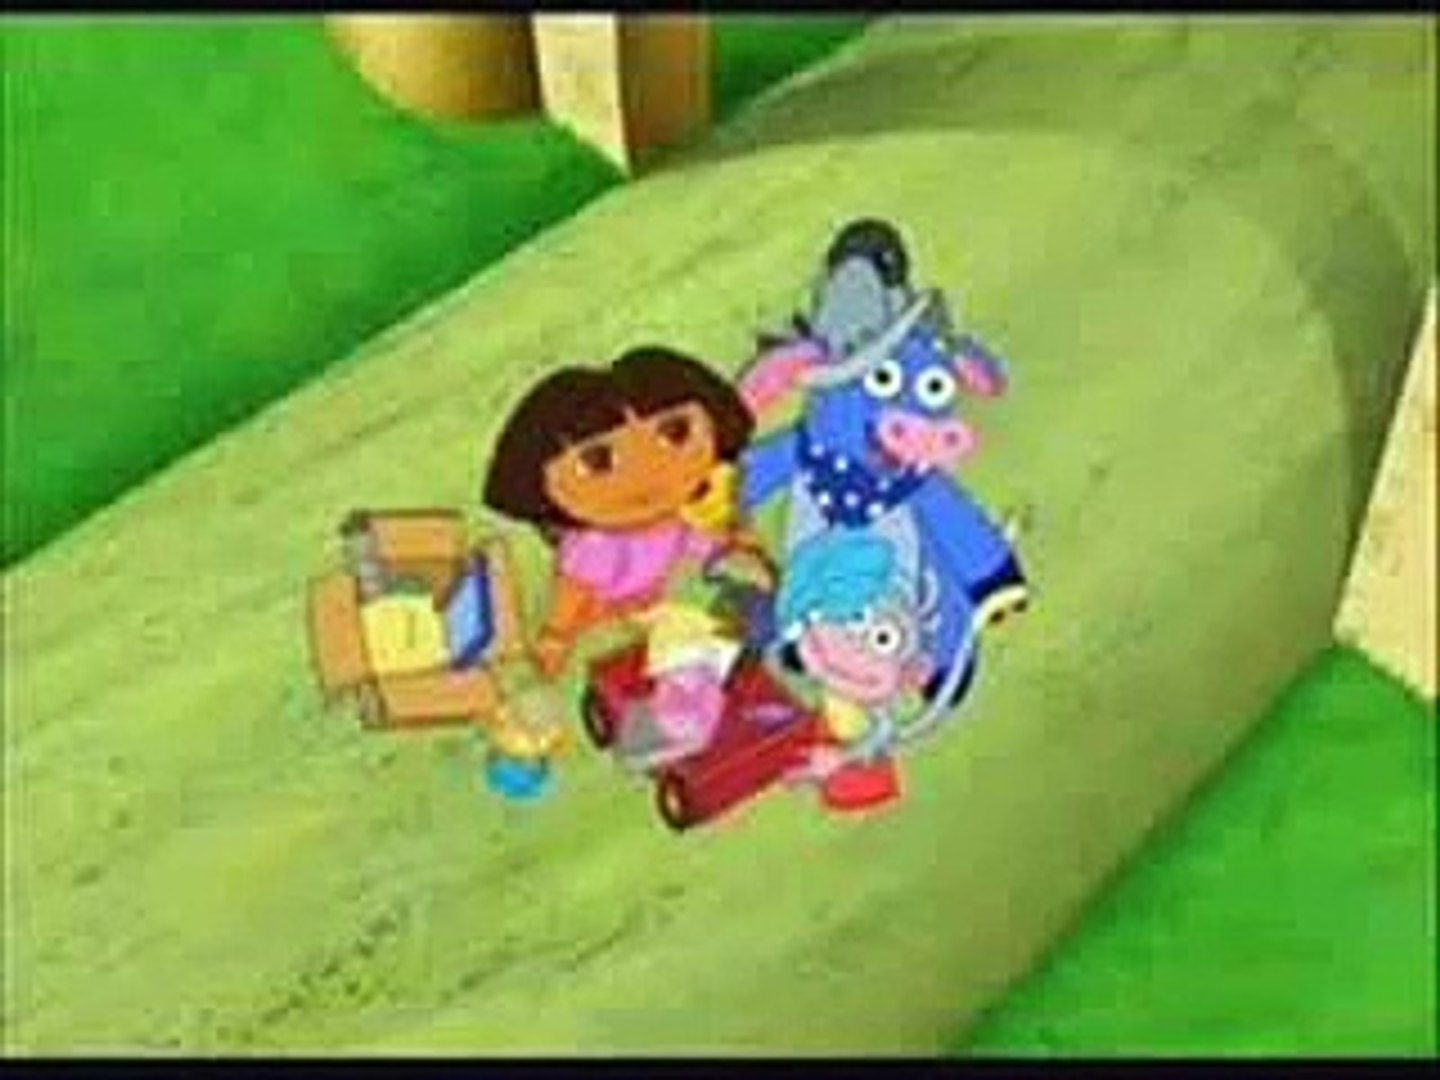 Dora The Explorer Episode 7